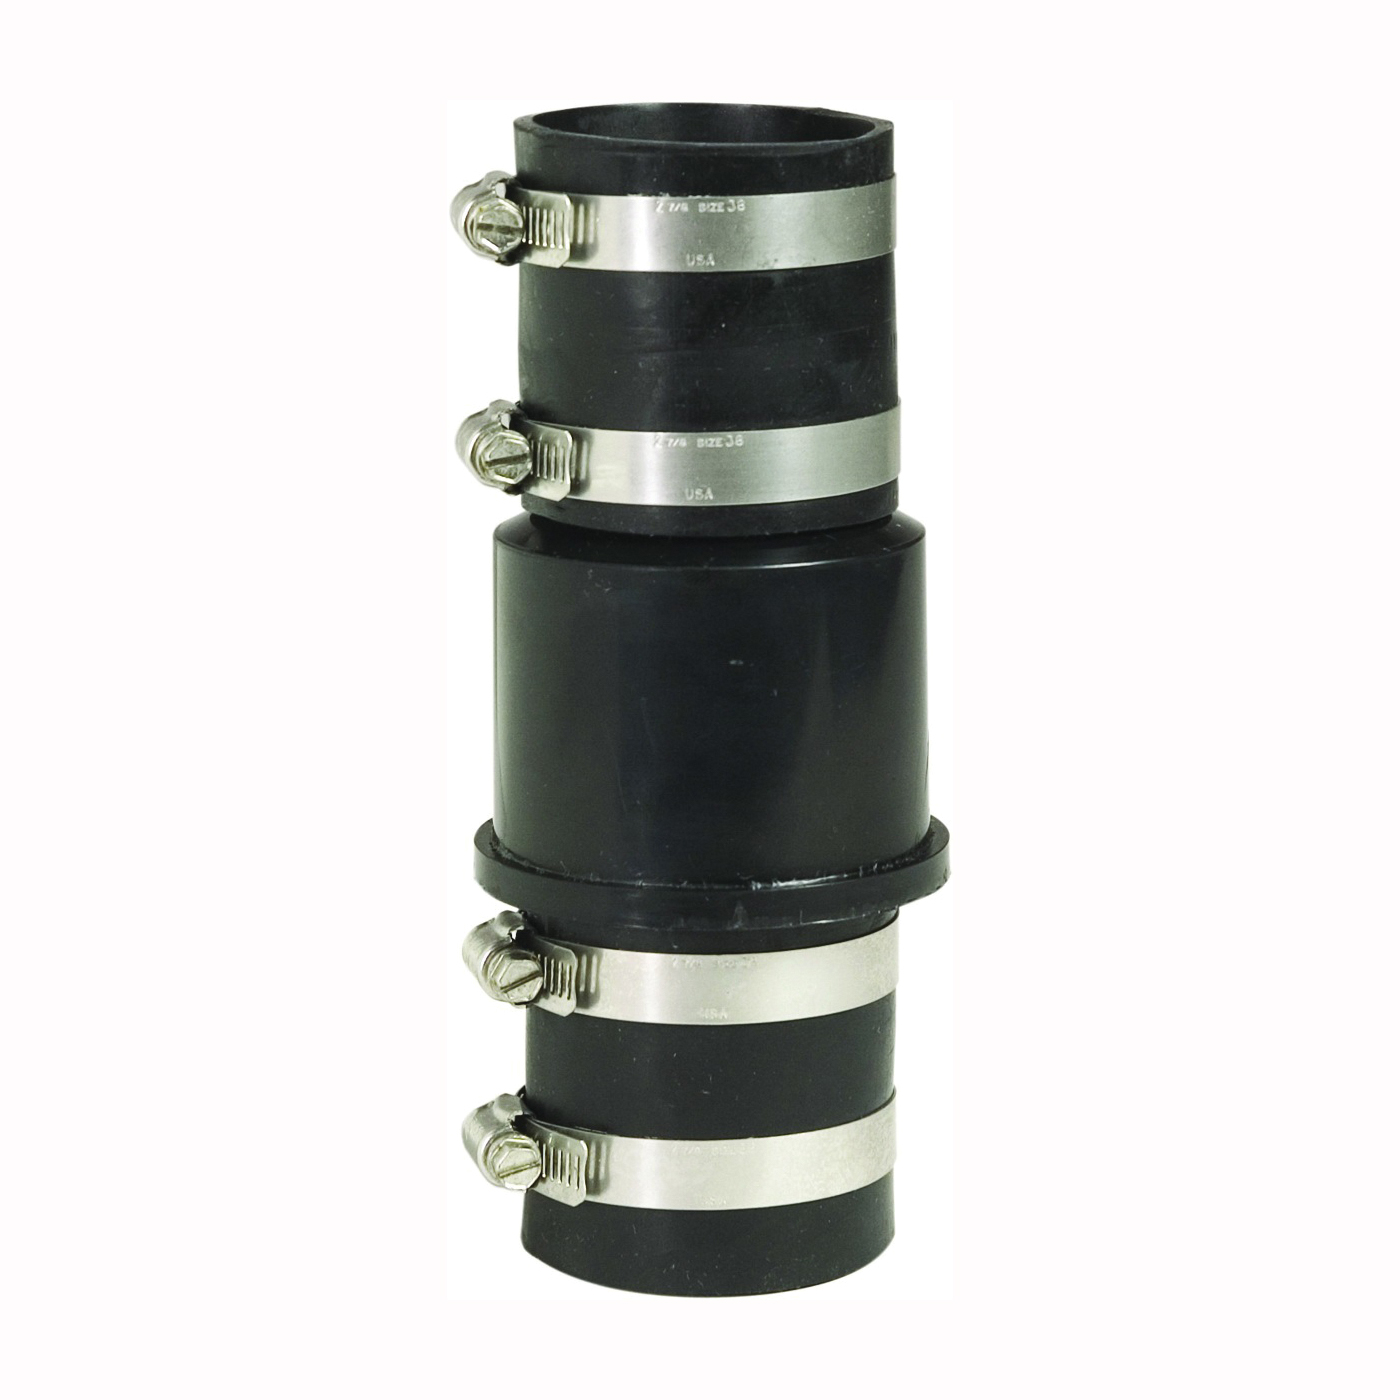 Picture of Flotec FP212-257 Check Valve, 2 in, Compression, Plastic Body